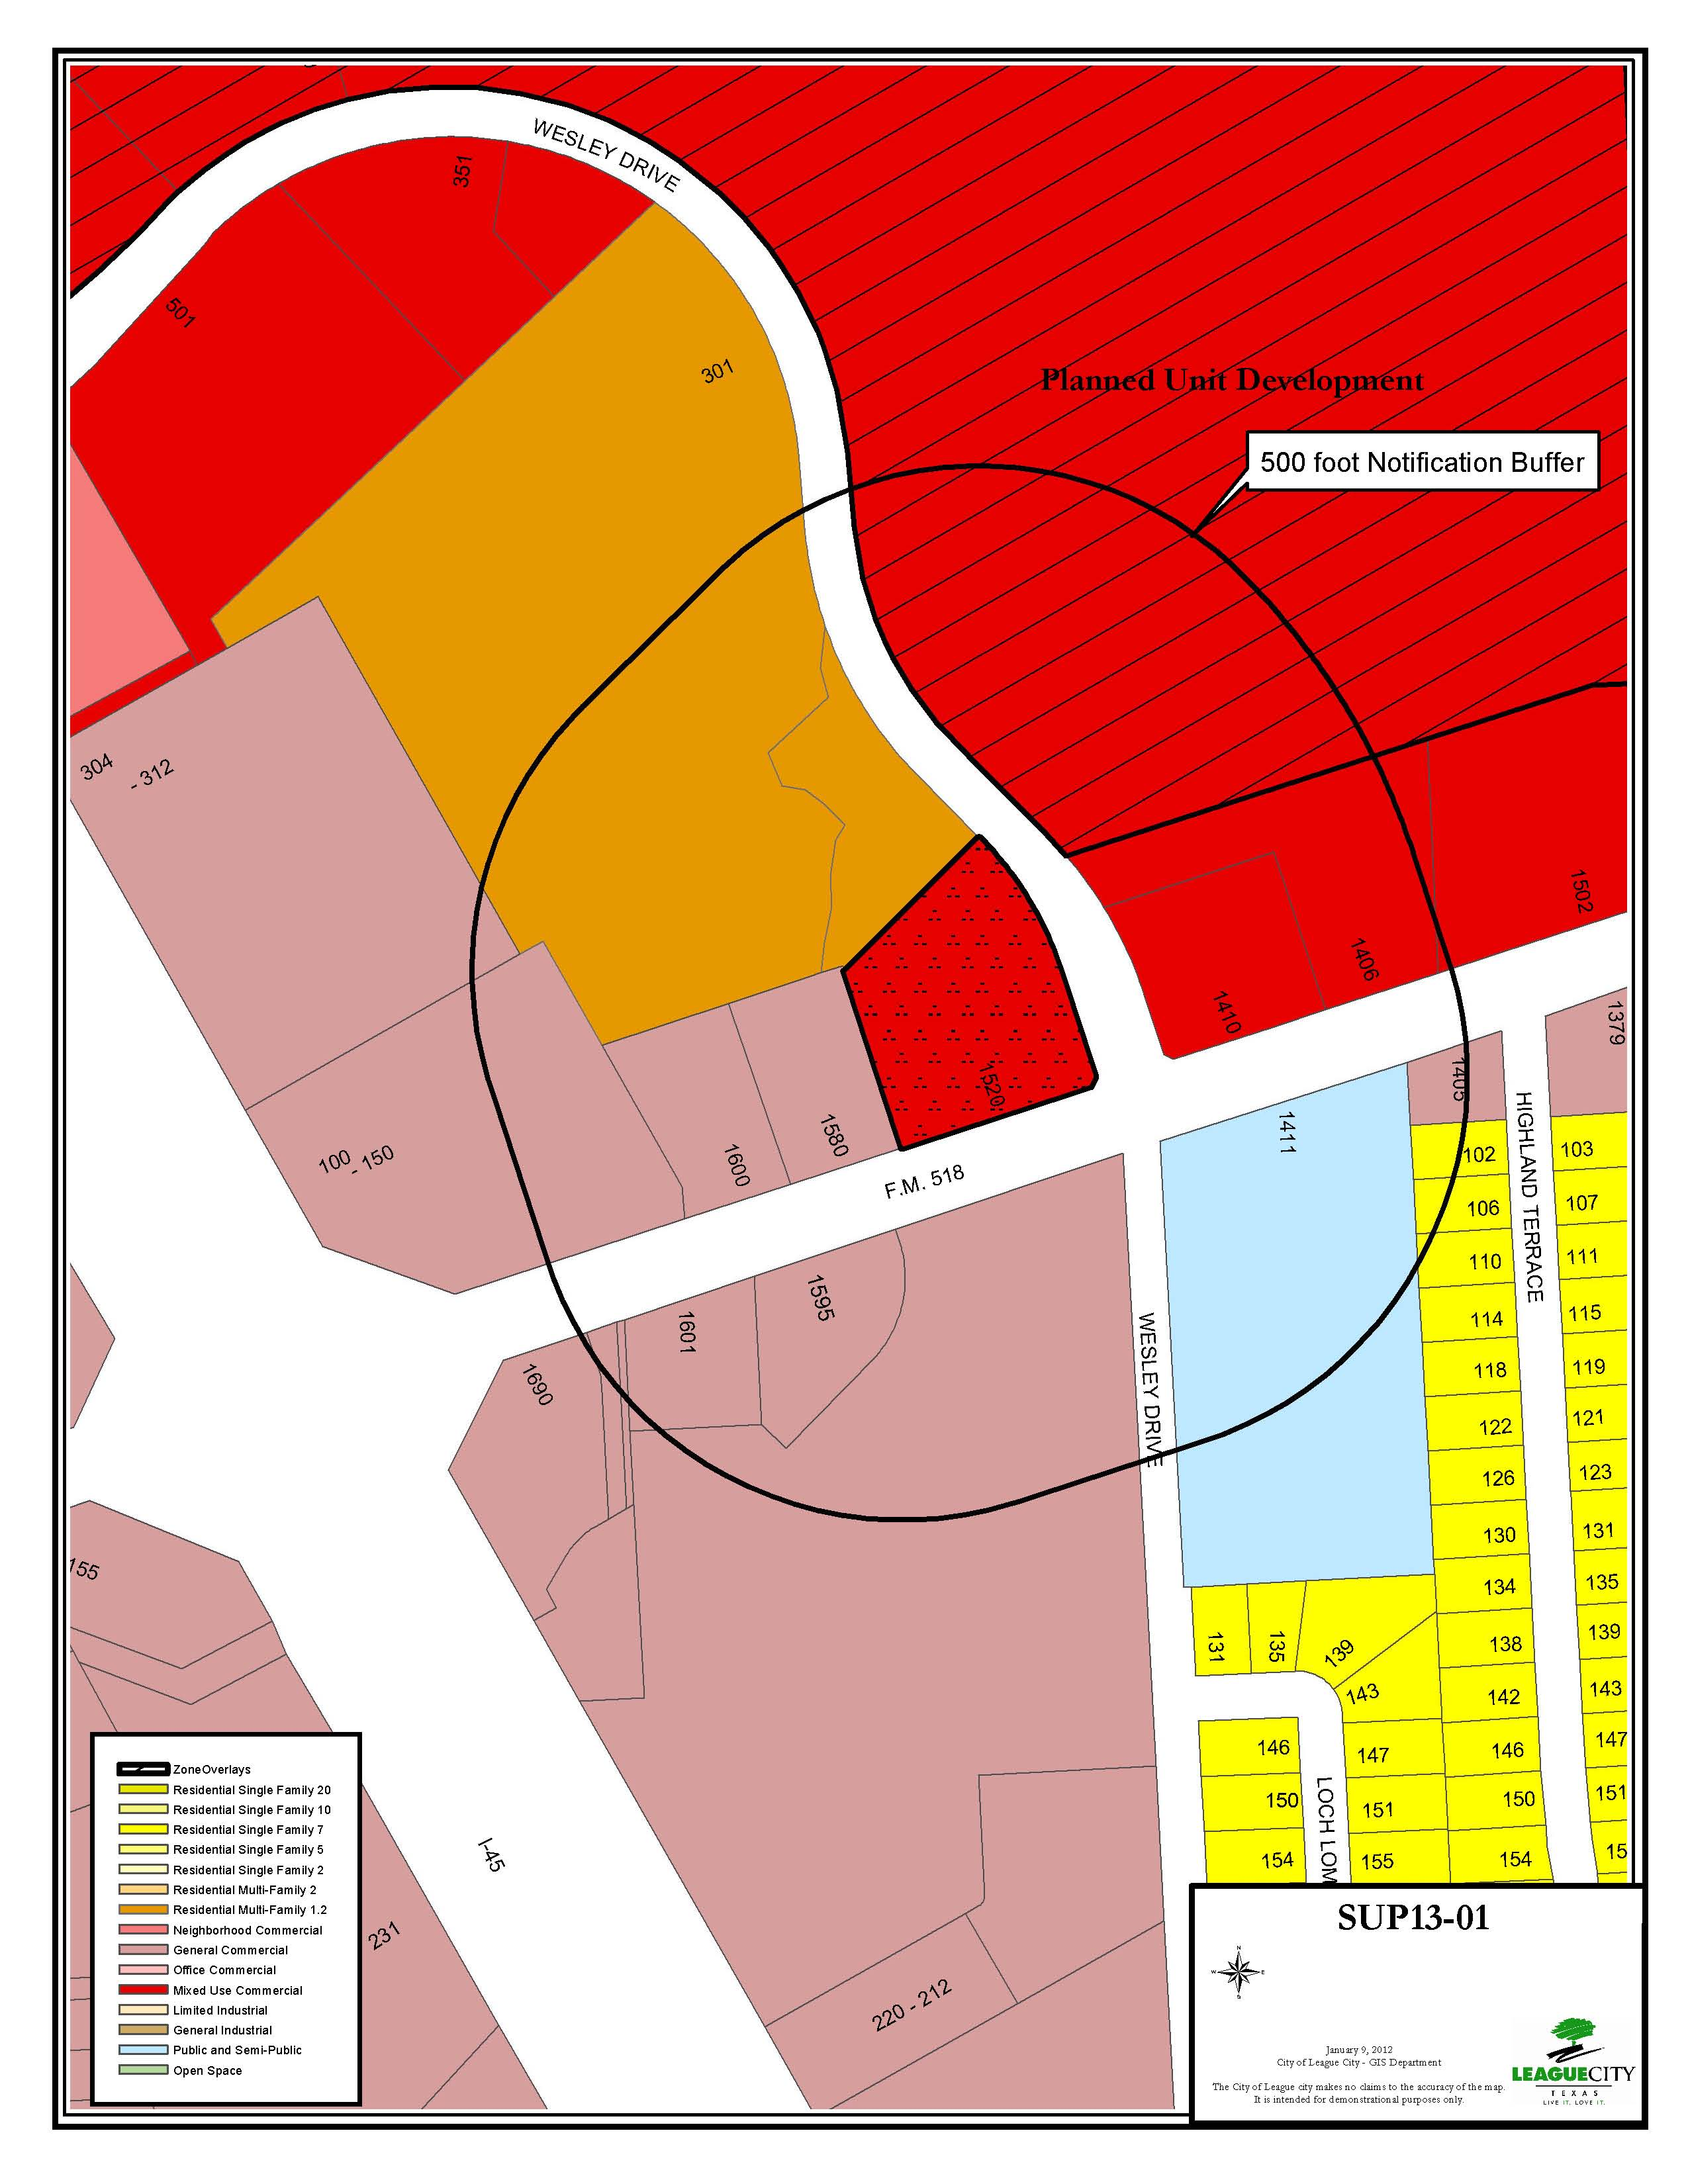 SUP13-01 zoning map